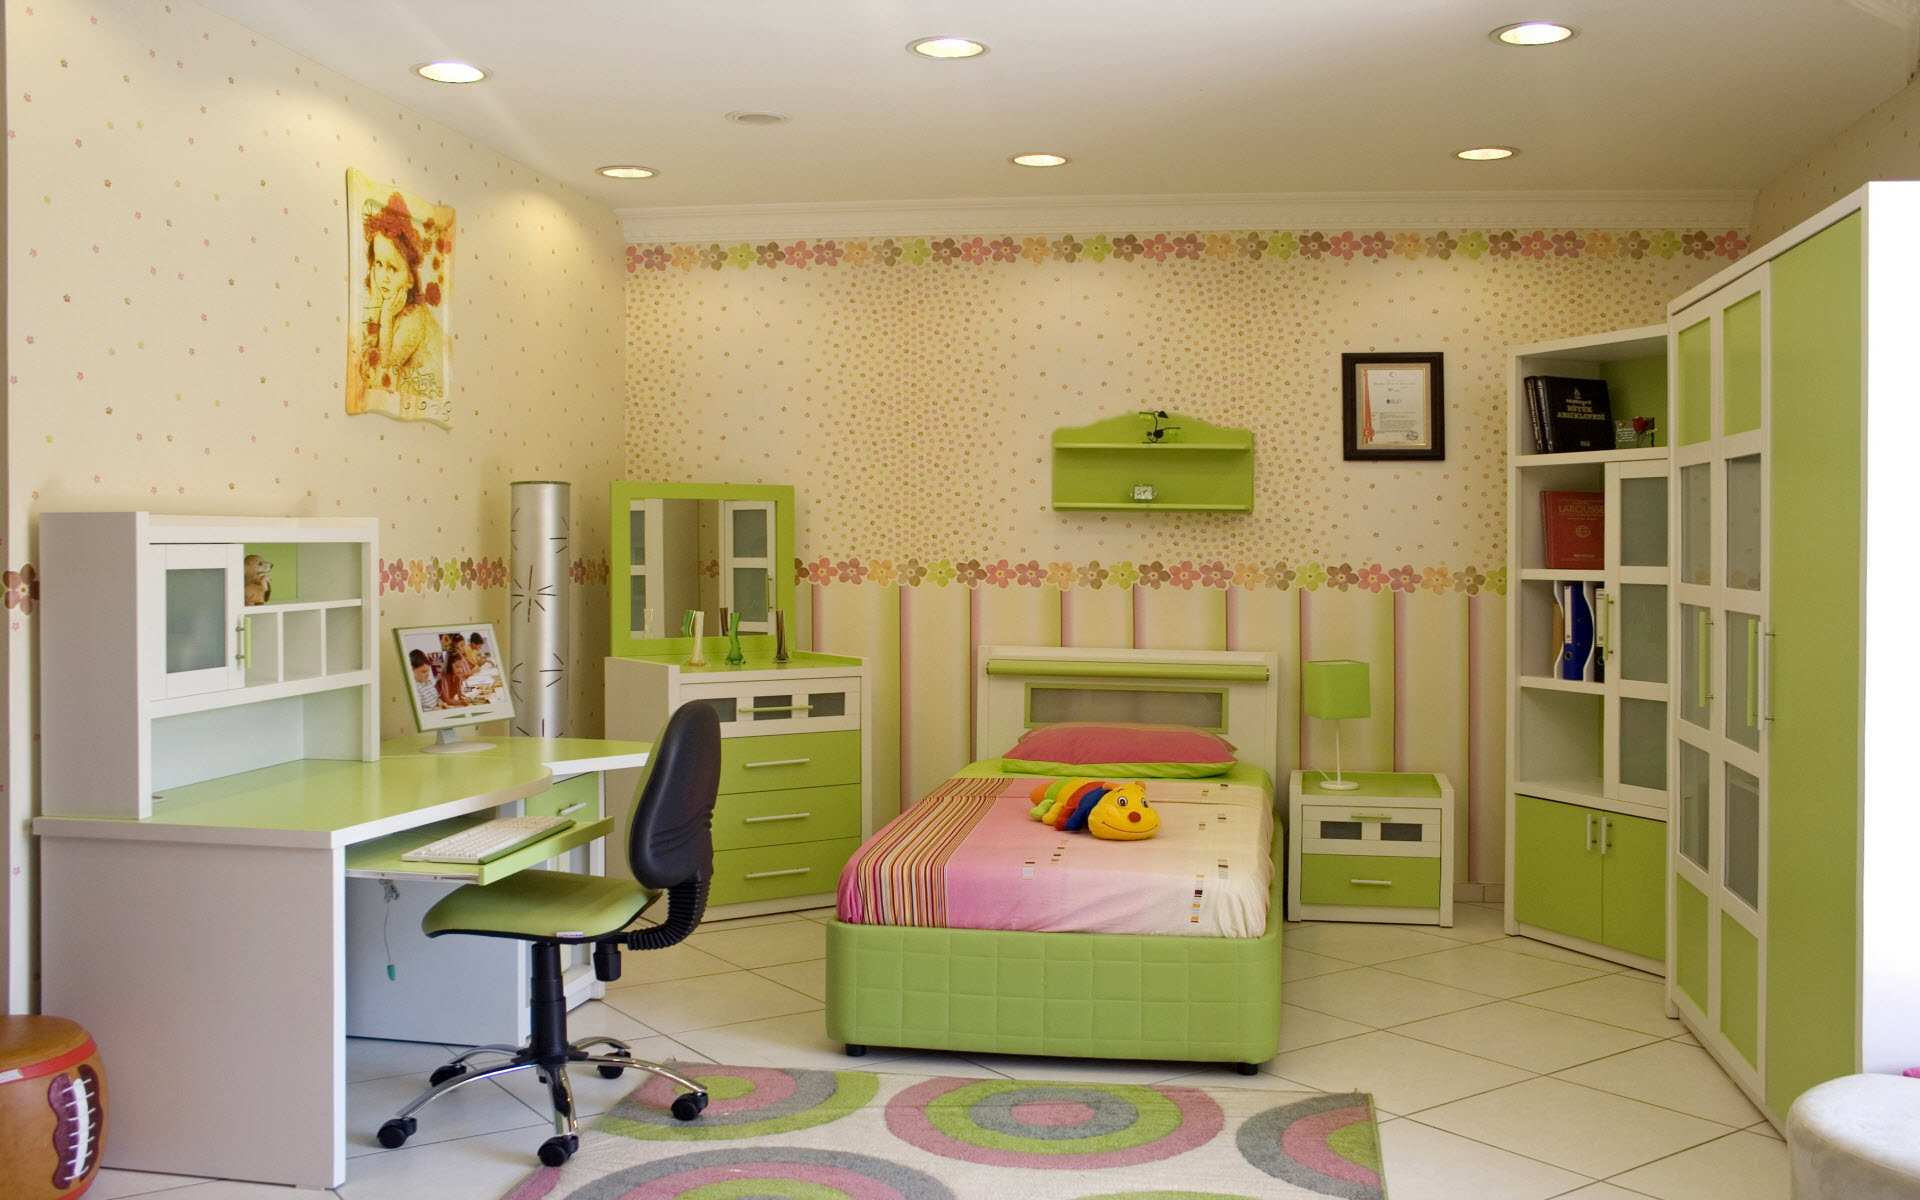 don t forger color is a child s room this stylish kid s room